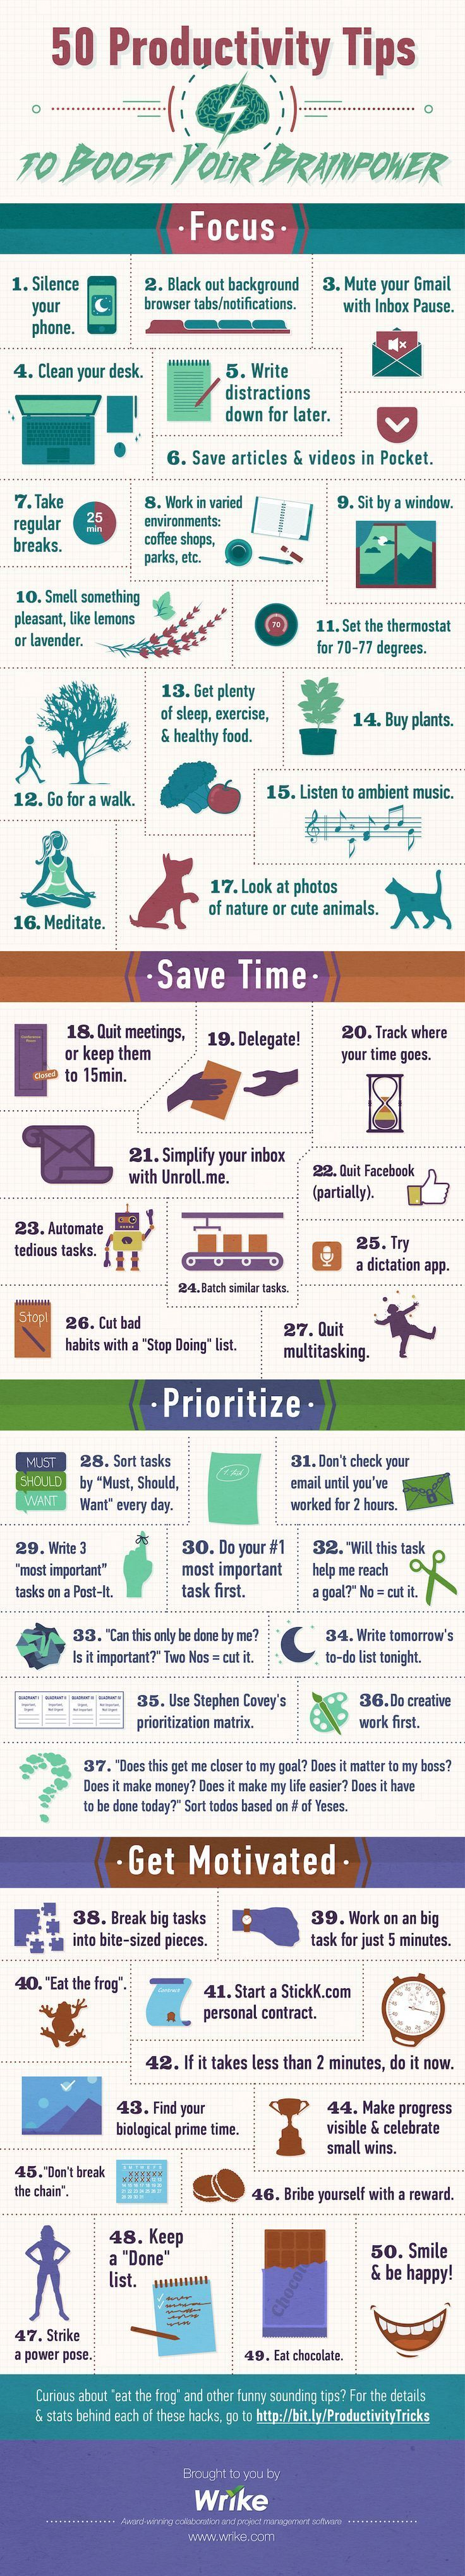 50 productivity tips to boost your brainpower: